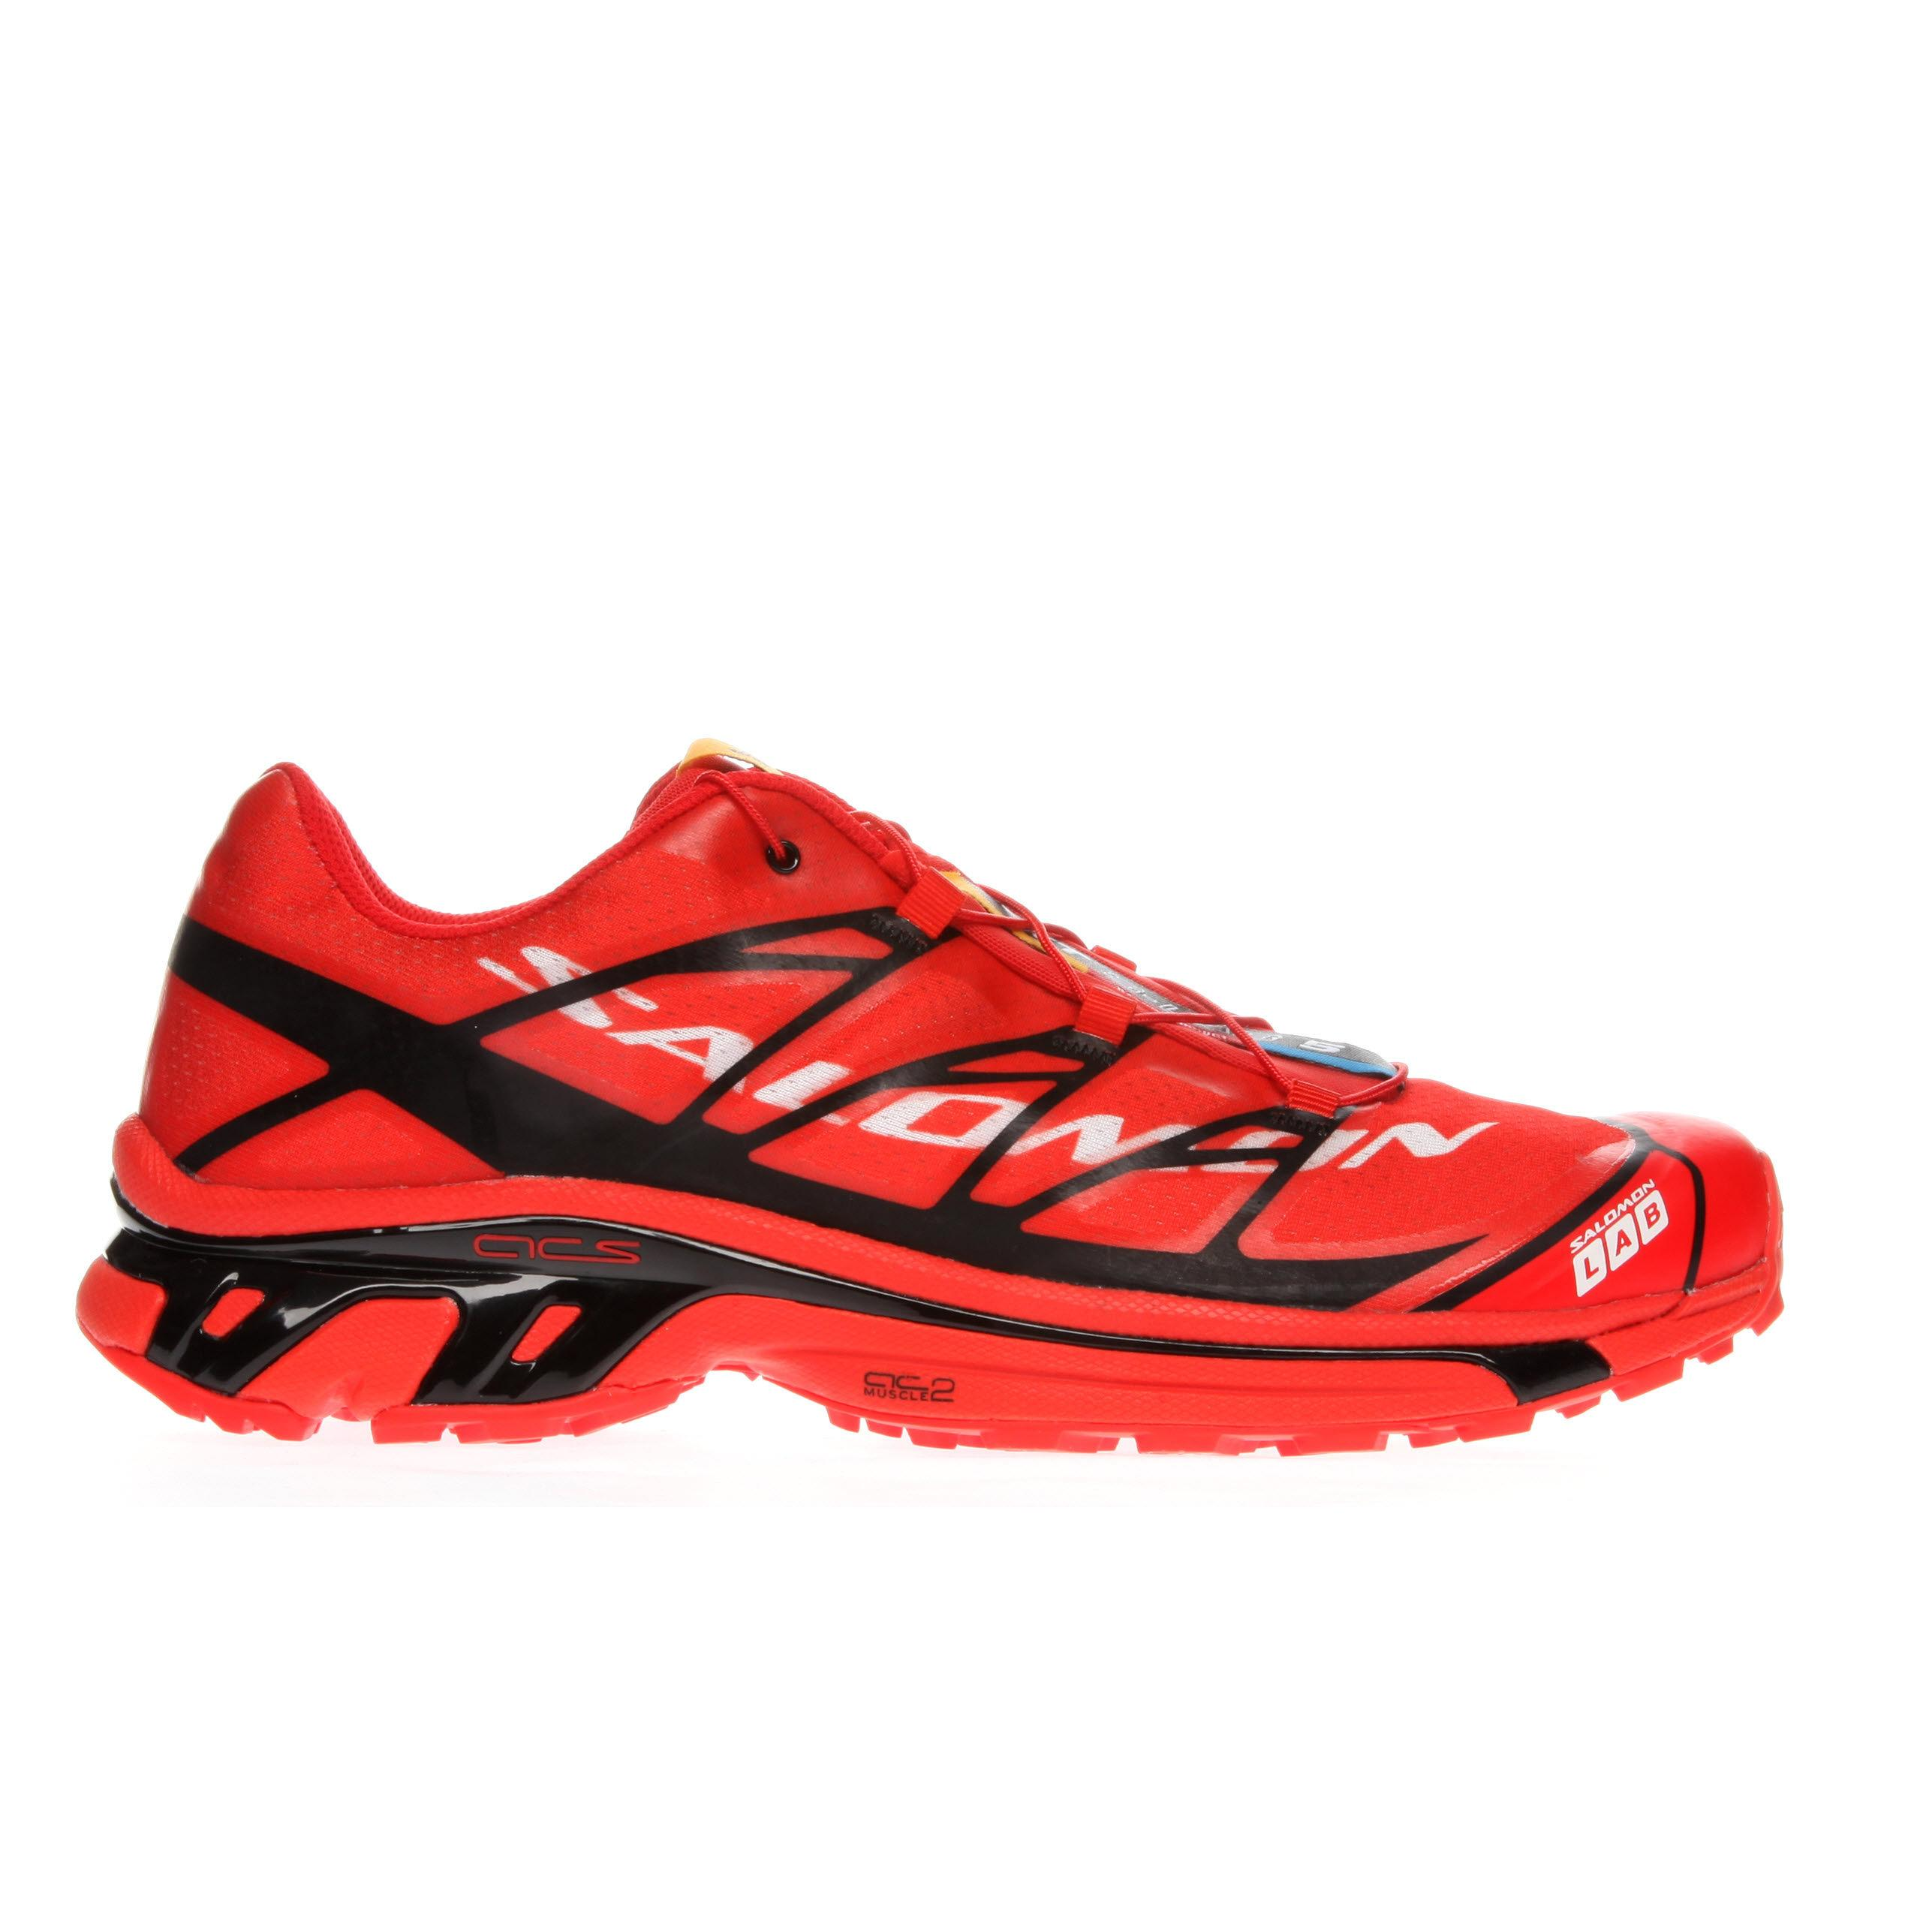 Foto Zapatillas Salomon - XT S-Lab 5 - UK 6 Red/Black/White